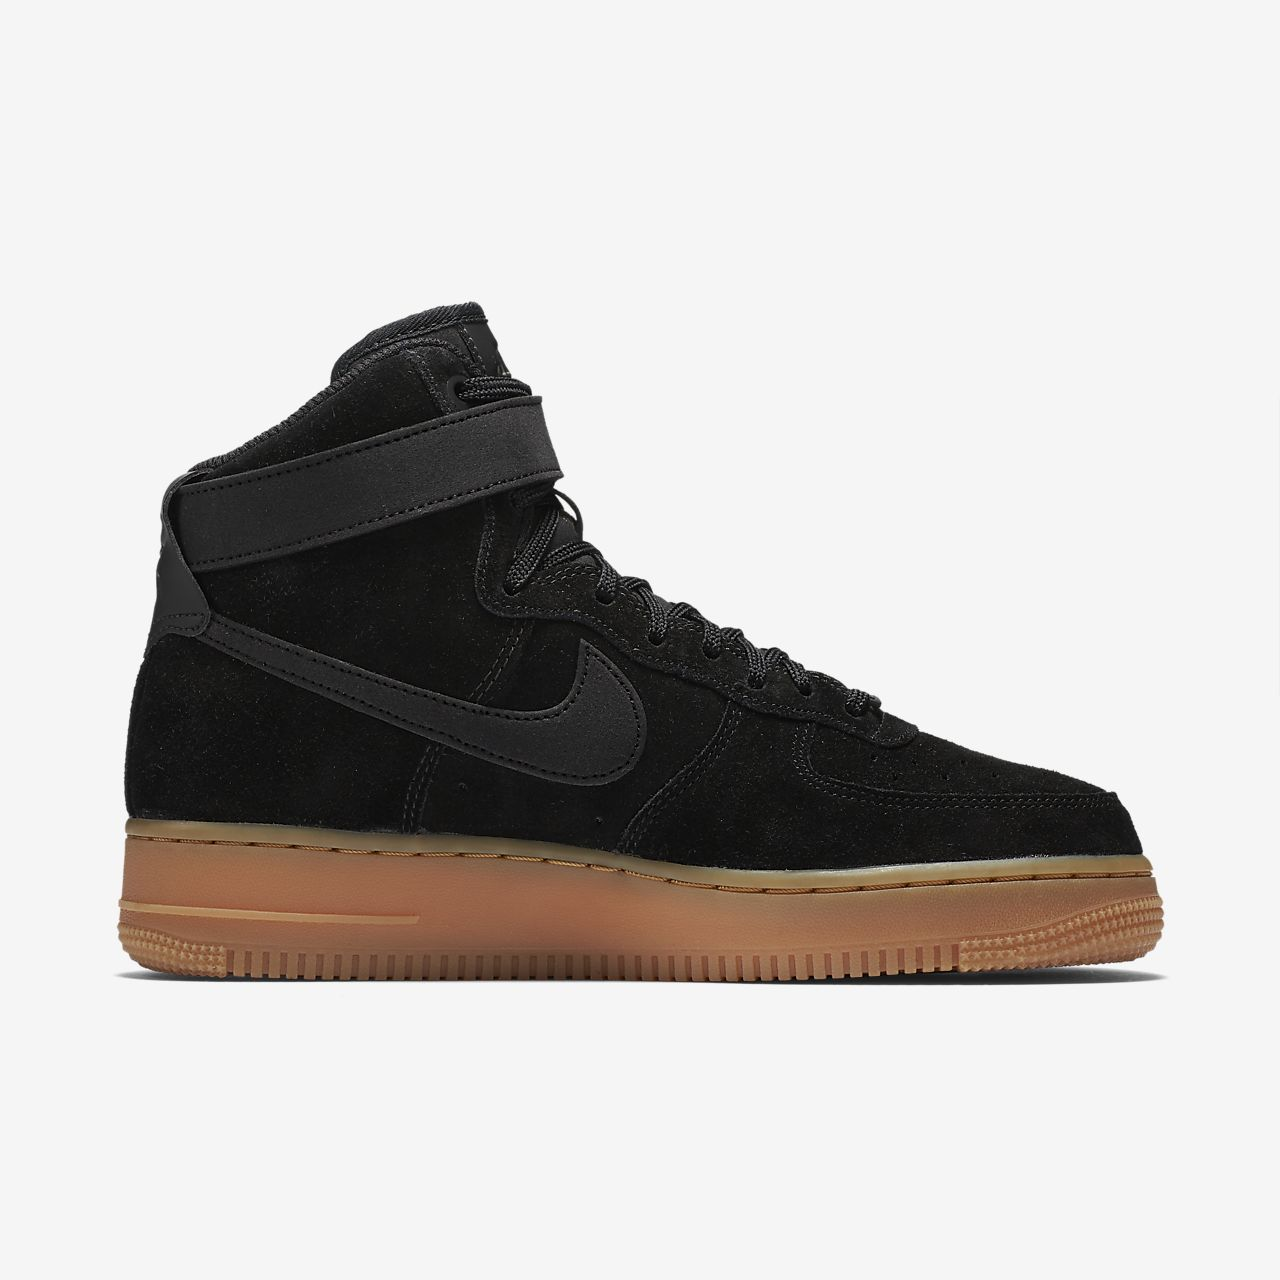 ... Nike Air Force 1 High SE Women's Shoe